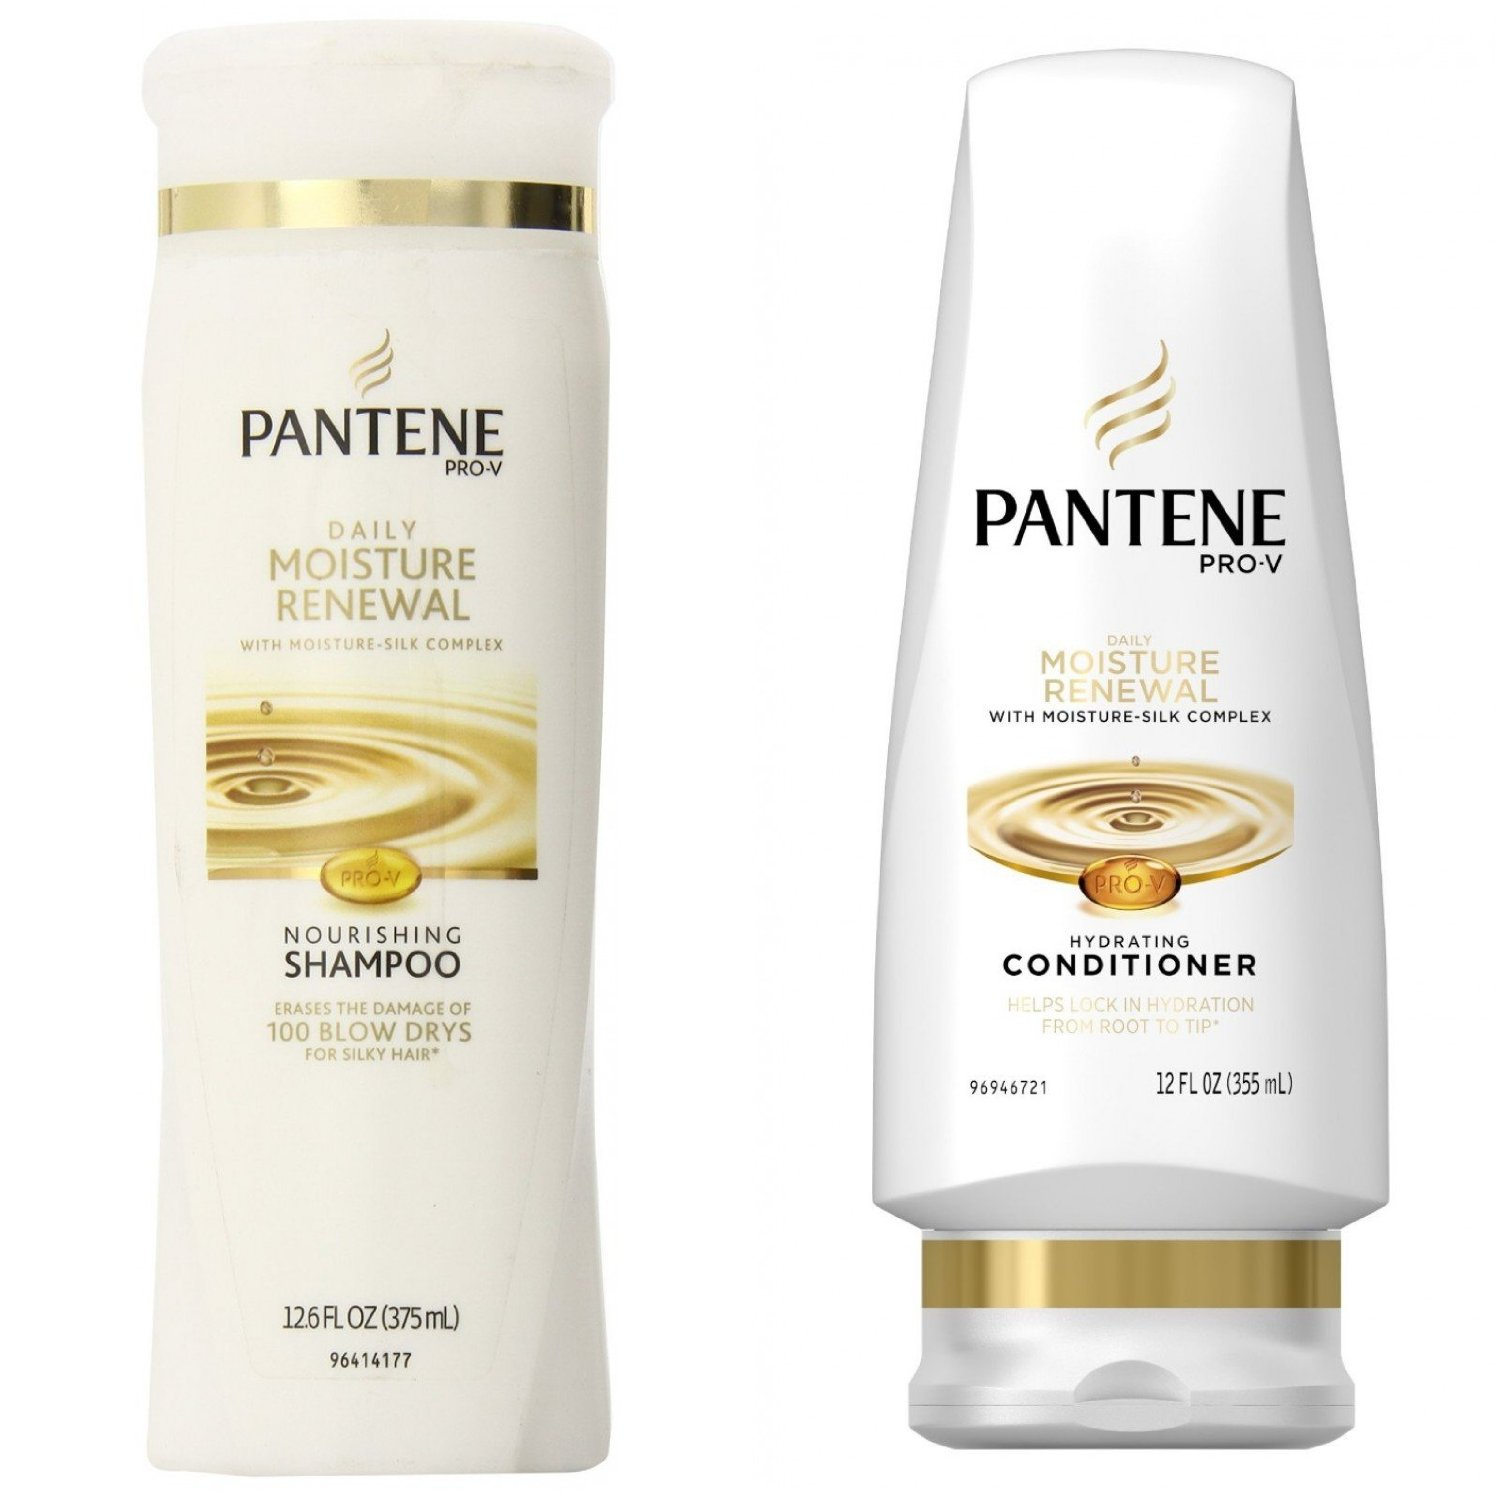 Pantene Pro-V Daily Moisture Renewal Hydrating Shampoo and Conditioner Dual Pack, 1.73 Pound